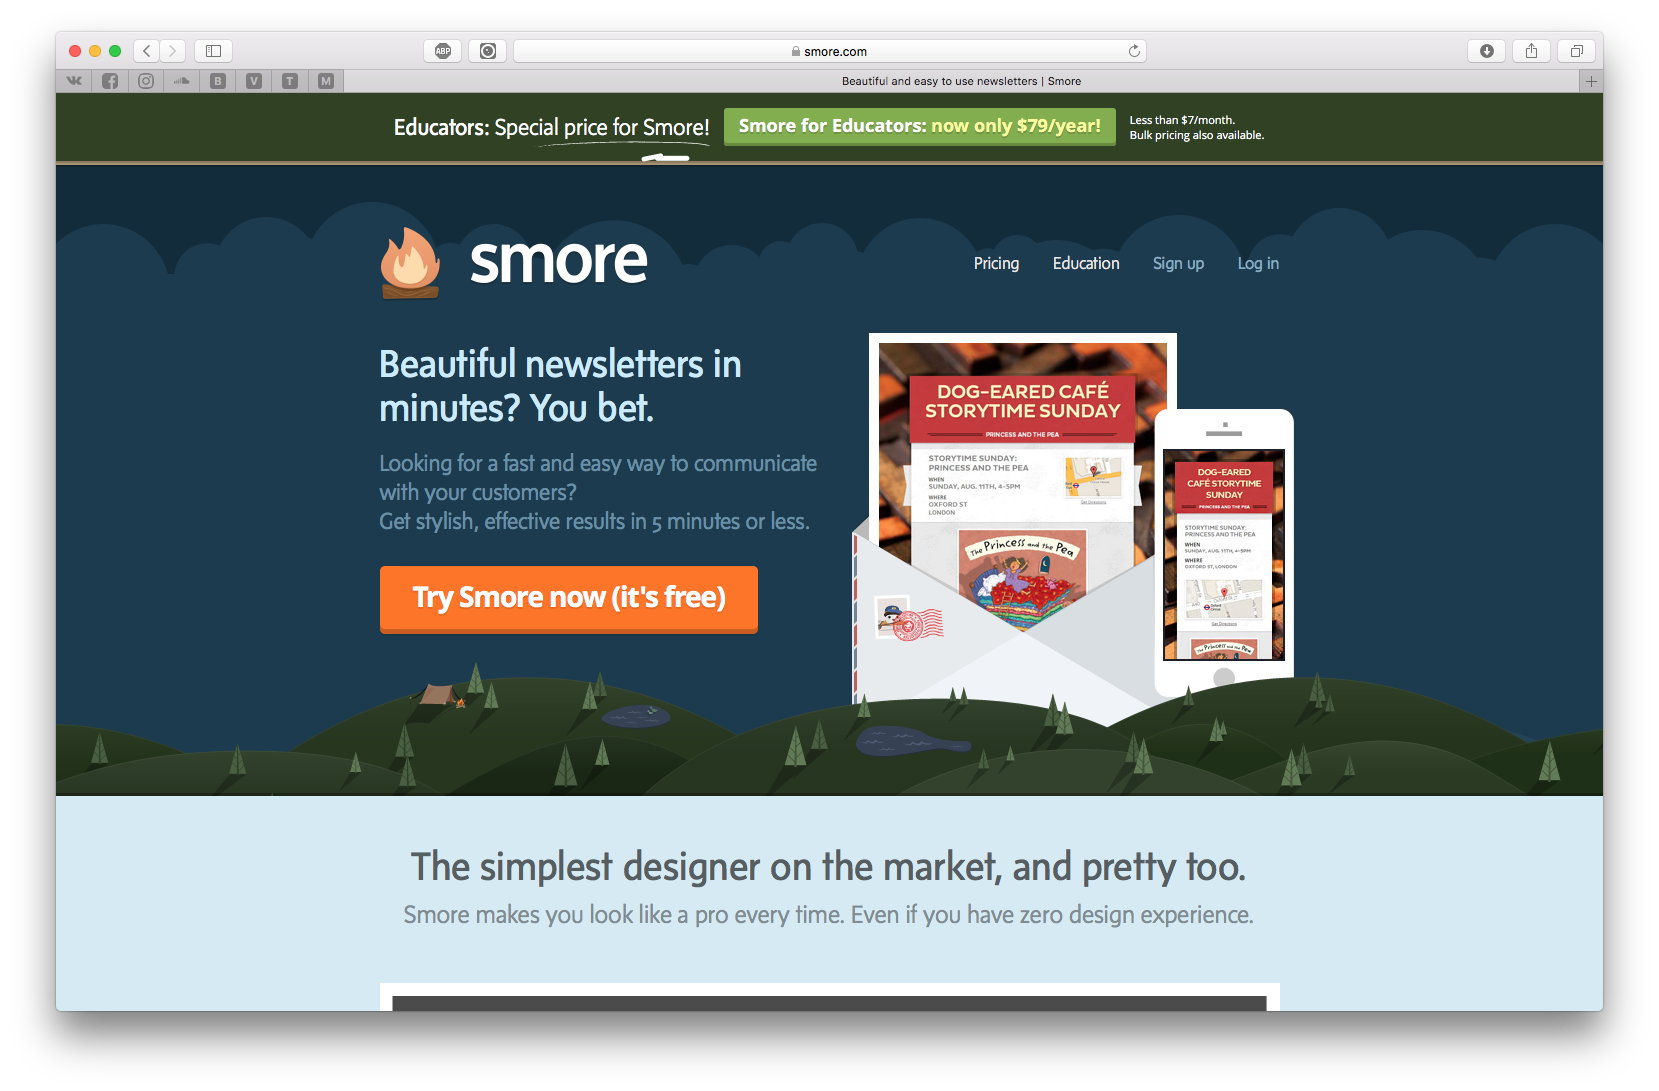 Smore helps you to create beautiful flyers when promoting events